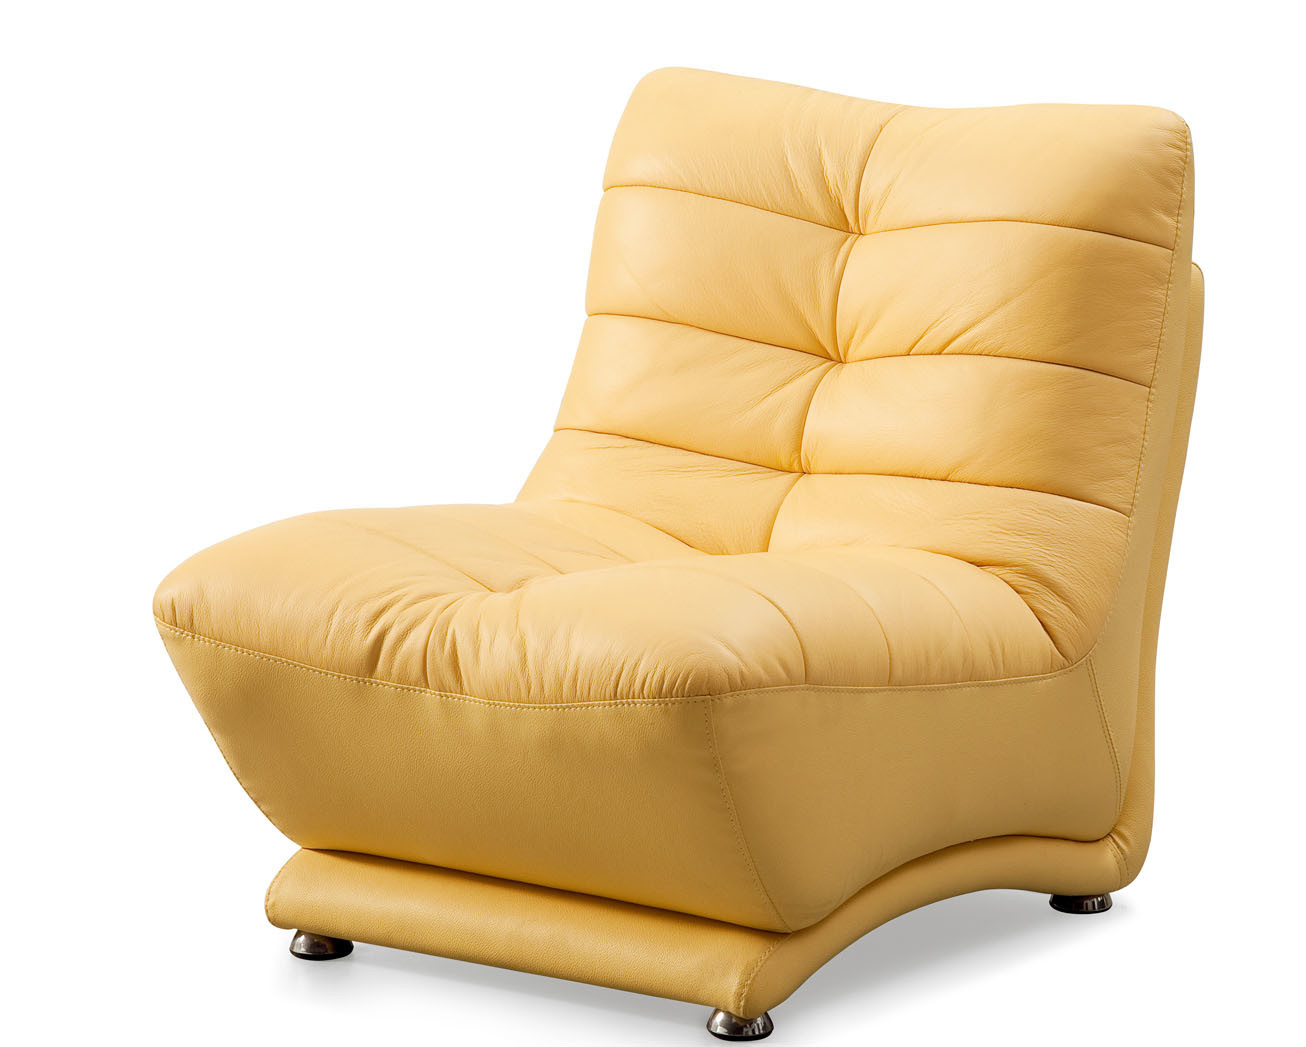 China sofa chairs prince chair china sofa prince chairs for Furniture chairs